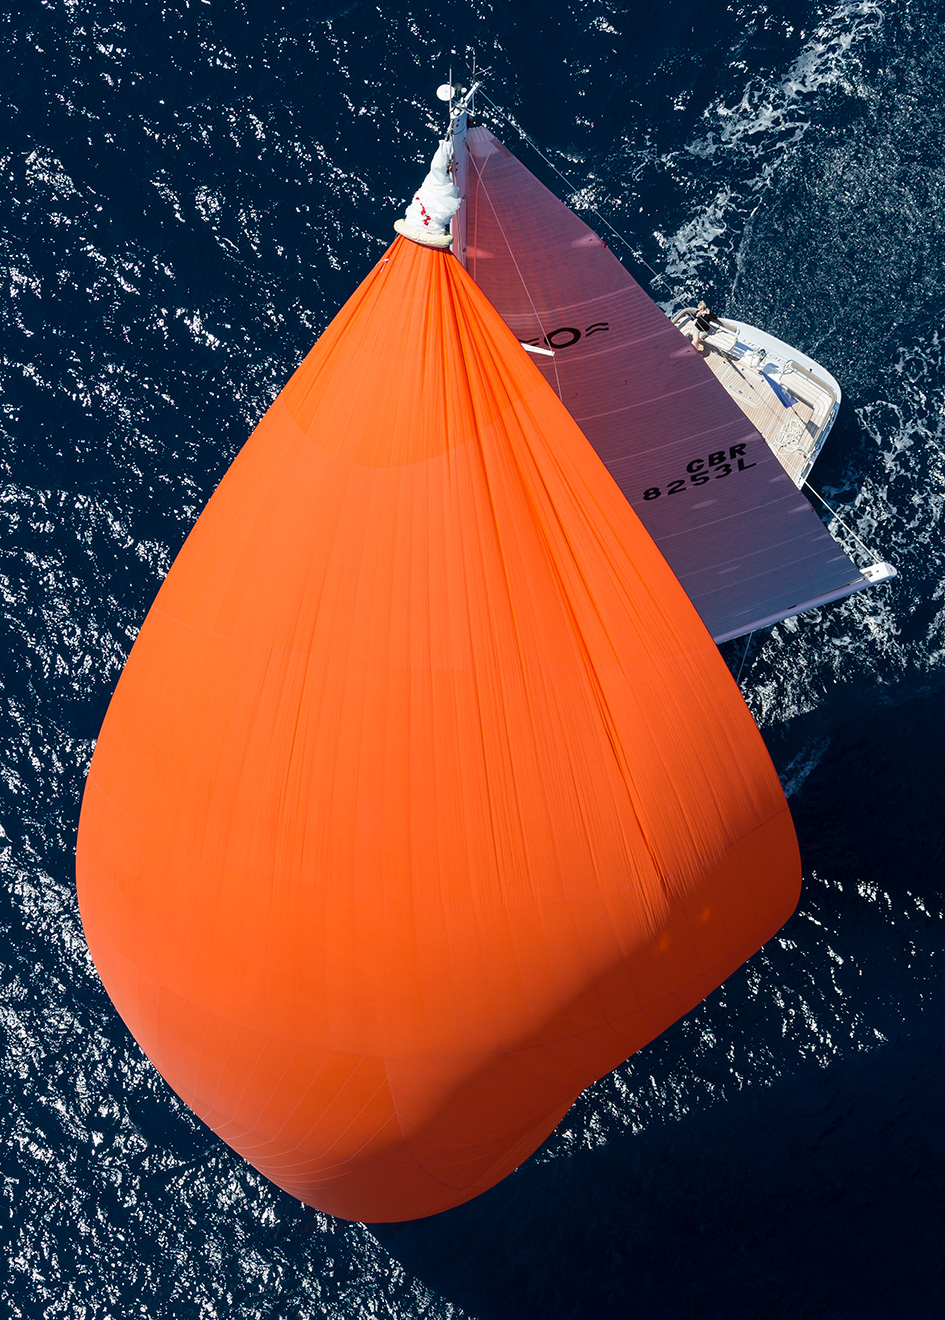 the-oyster-825-sailing-super-yacht-maegan-with-her-spinnaker-aloft